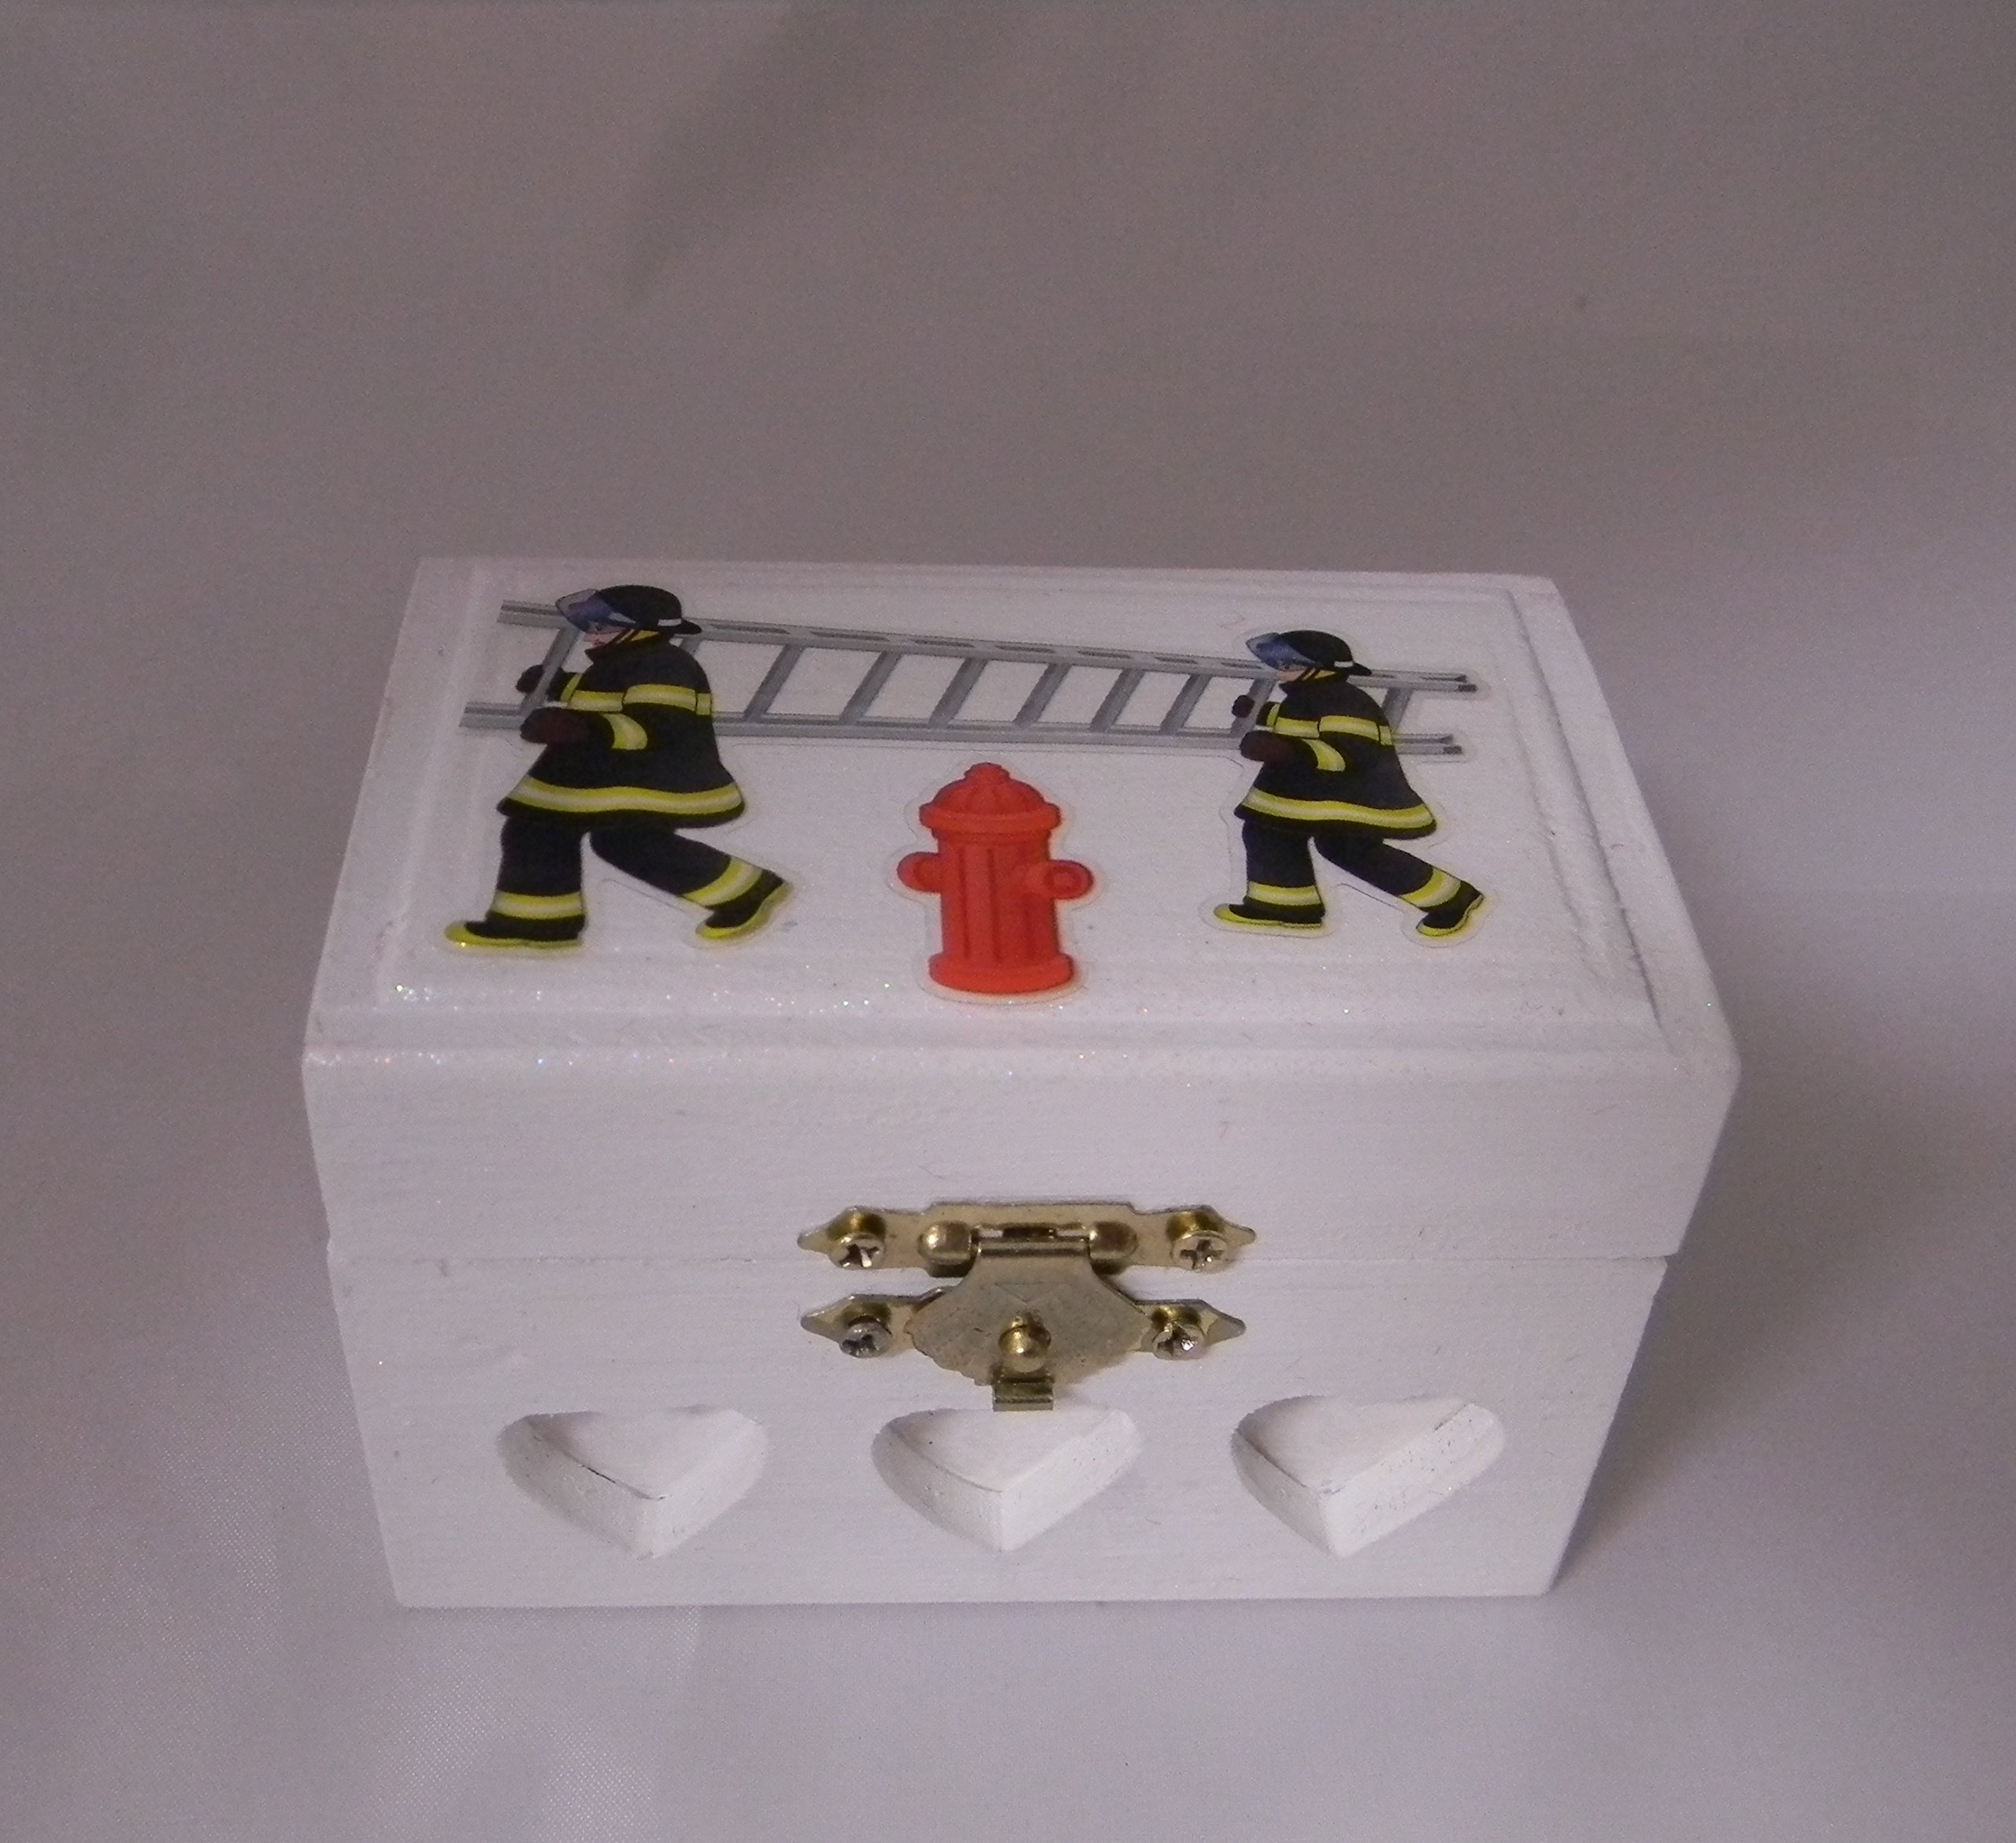 Wedding Ceremony Party Fireman Firefighter ring bearer pillow Box by Custom Design Wedding Supplies by Suzanne